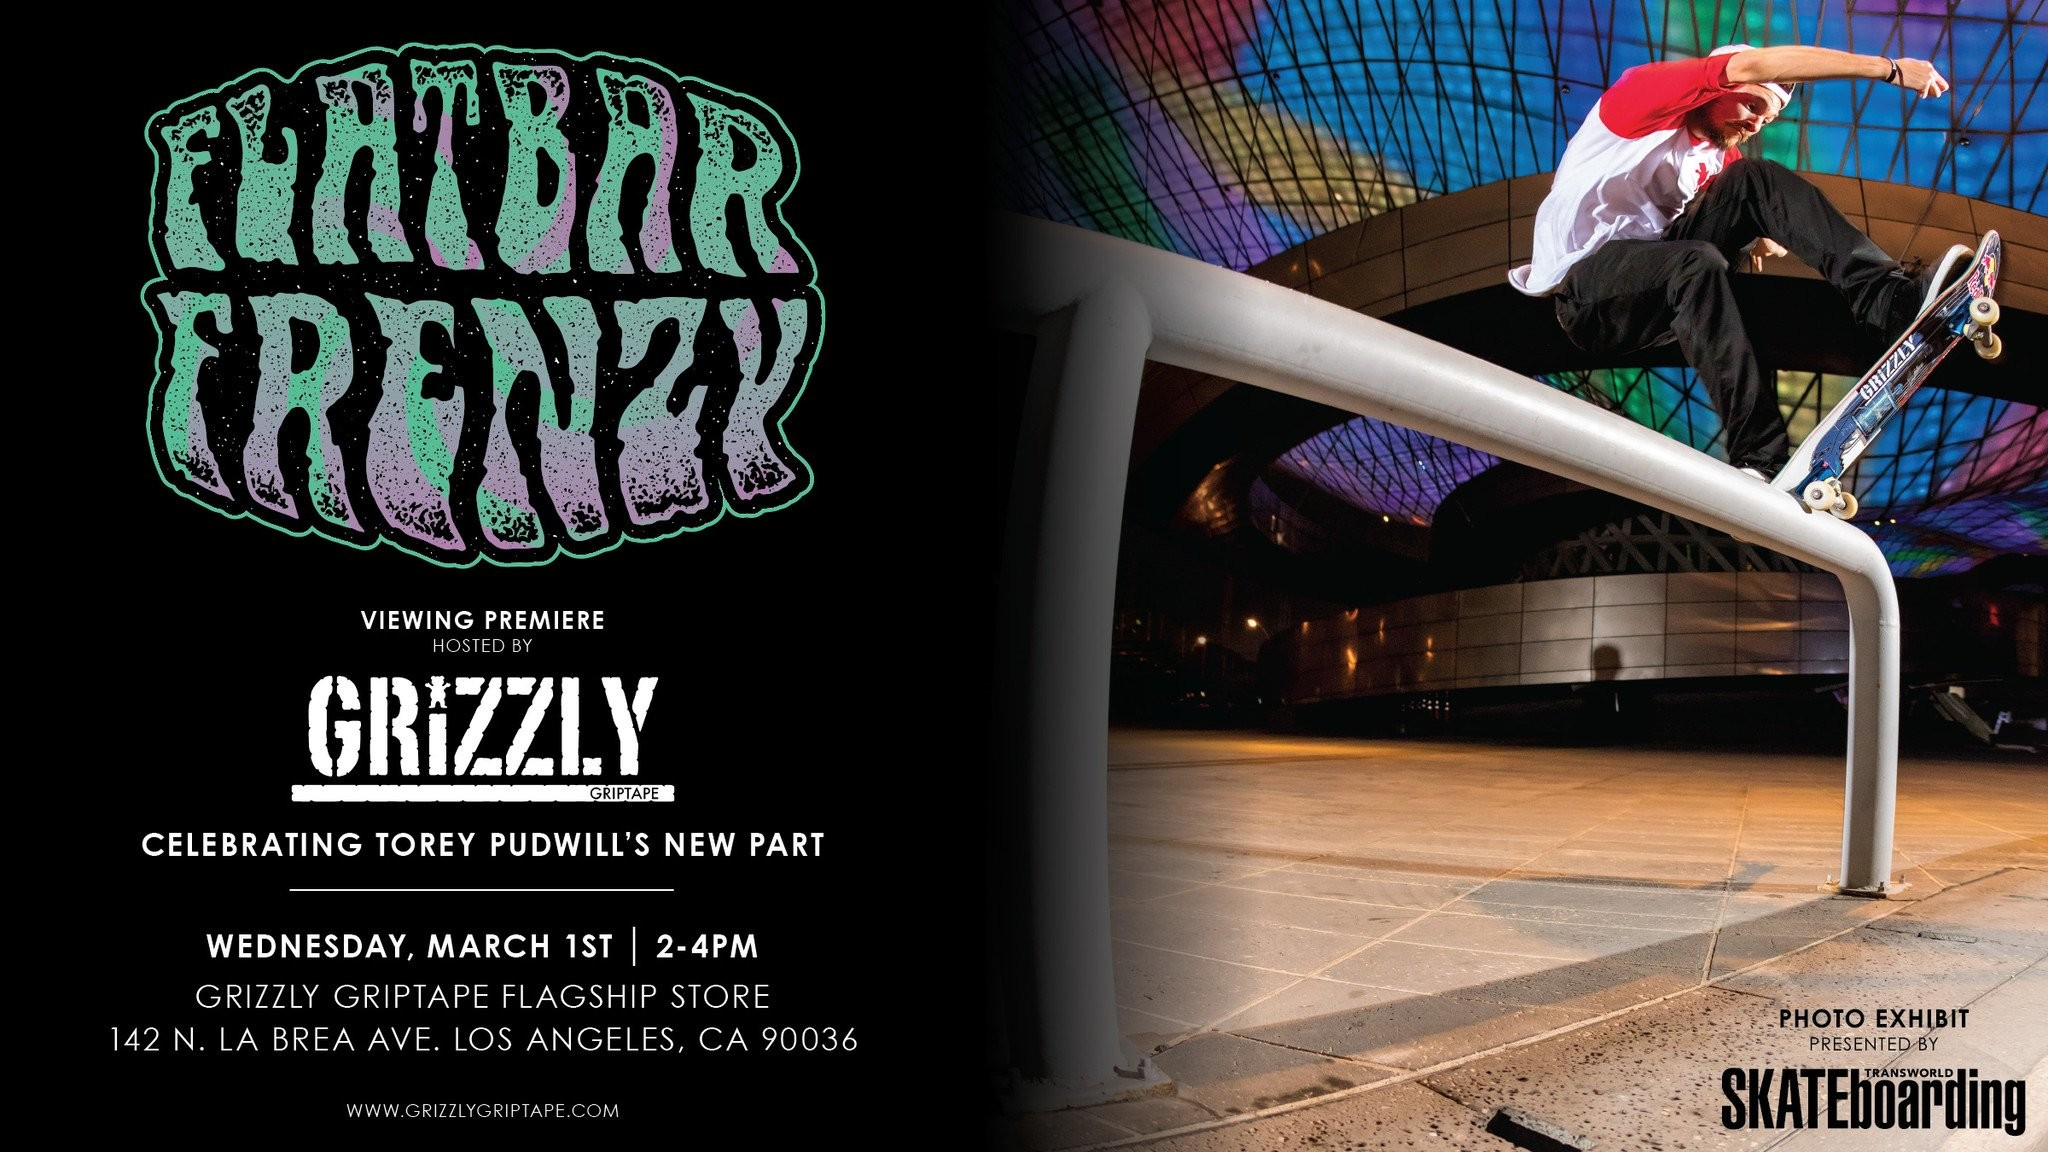 """Res: 2048x1152, Come out to the Grizzly Griptape Flagship Wednesday March 1st from 2-4pm  for the premier of Torey Pudwill's latest part """"Flatbar Frenzy"""" by RedBull."""